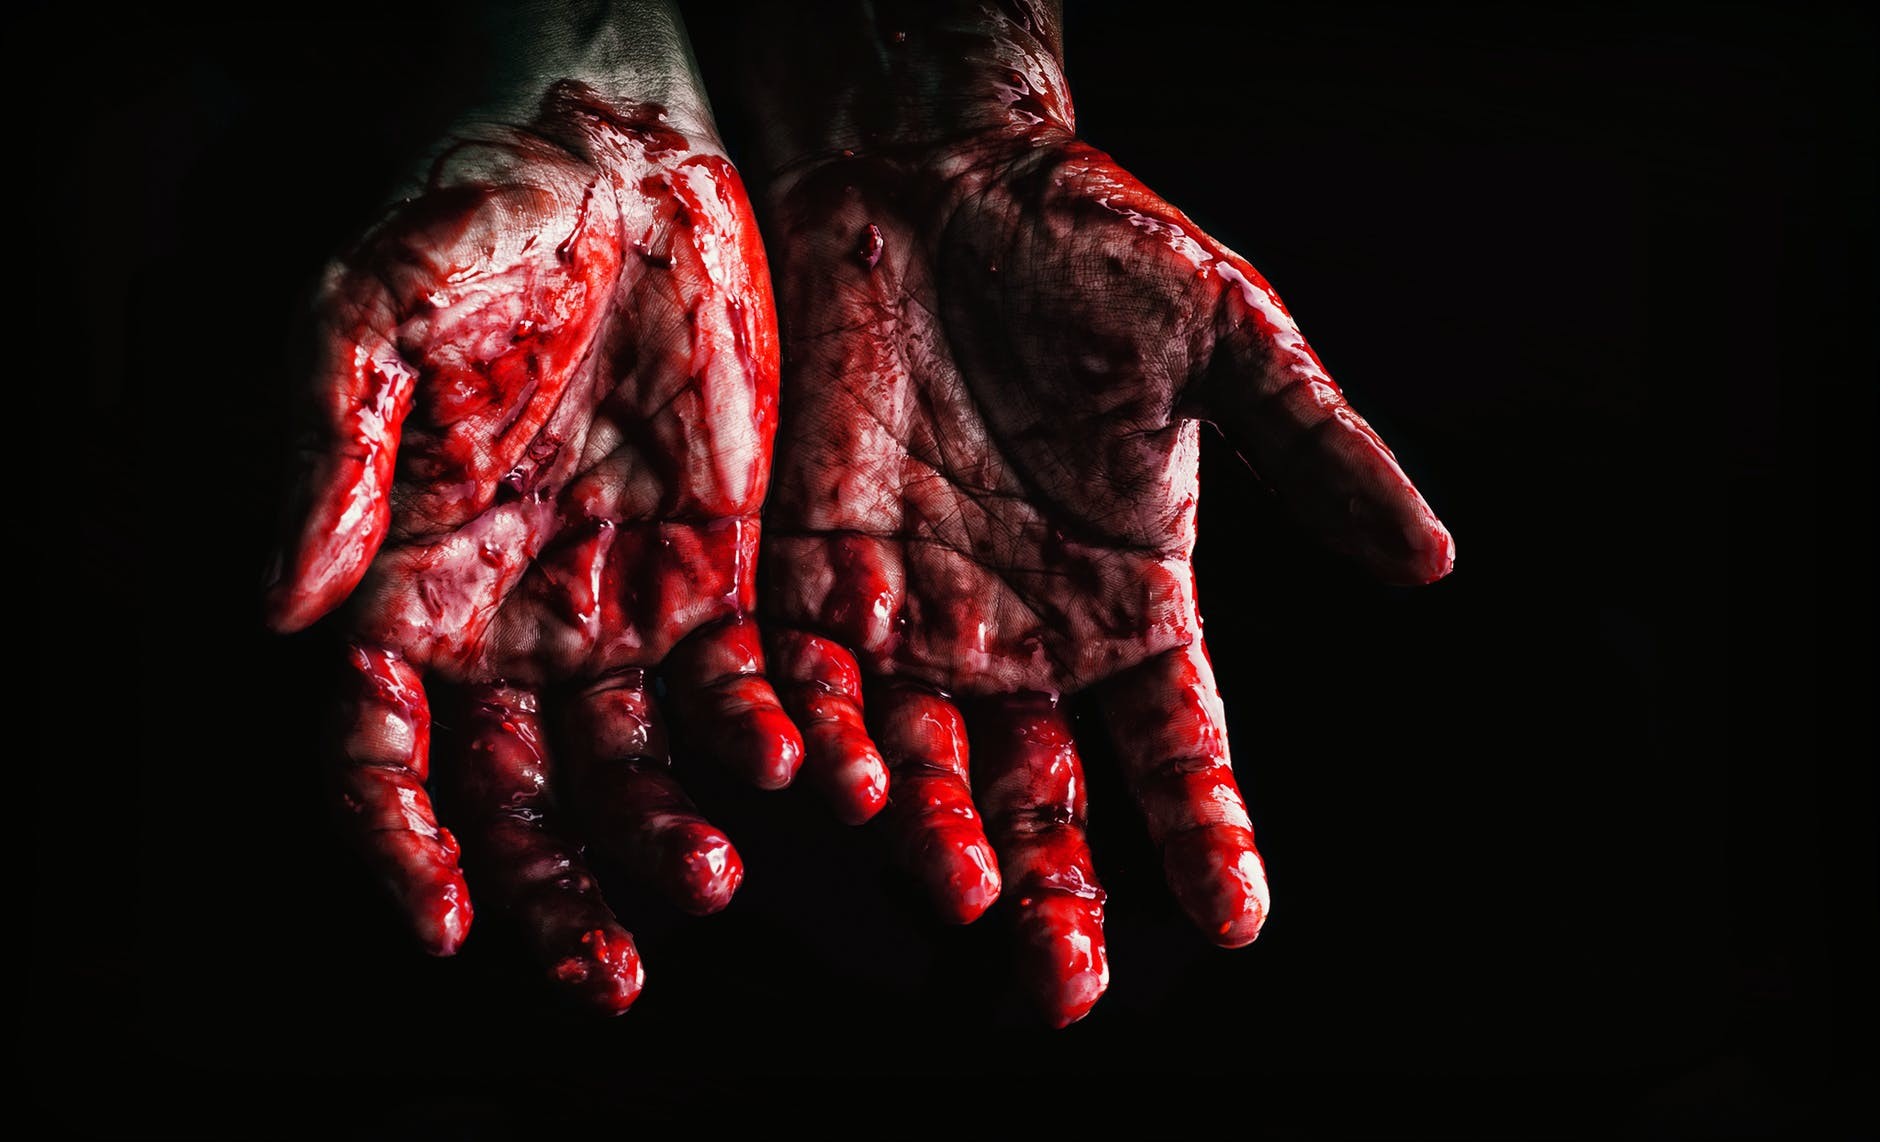 person s hands covered with blood